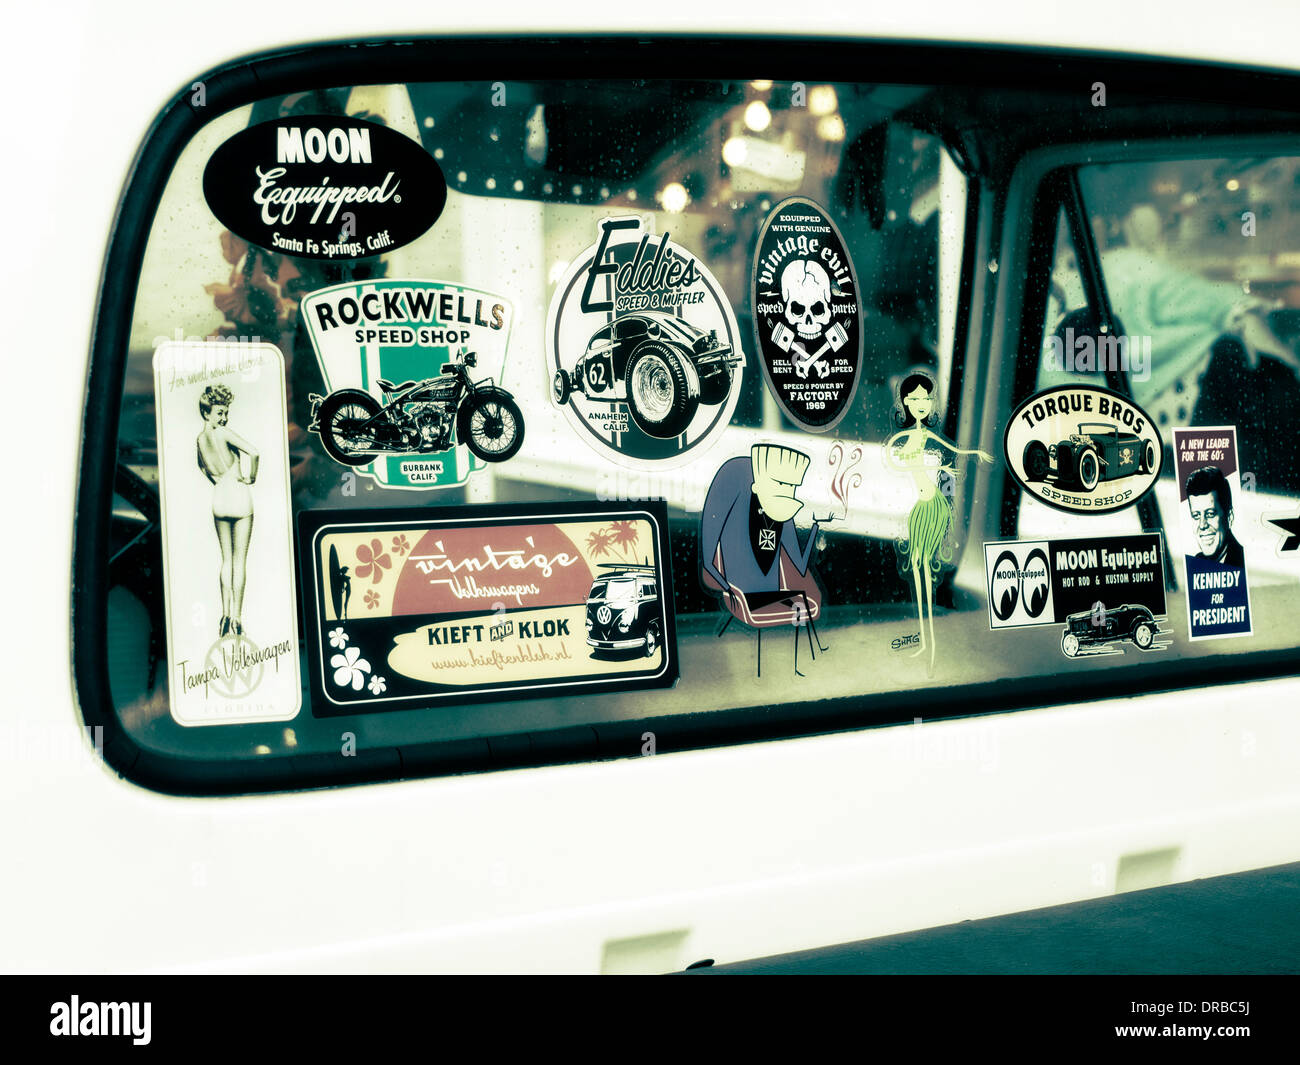 Hot rod shop window stickers on a Ford pick up truck - Stock Image